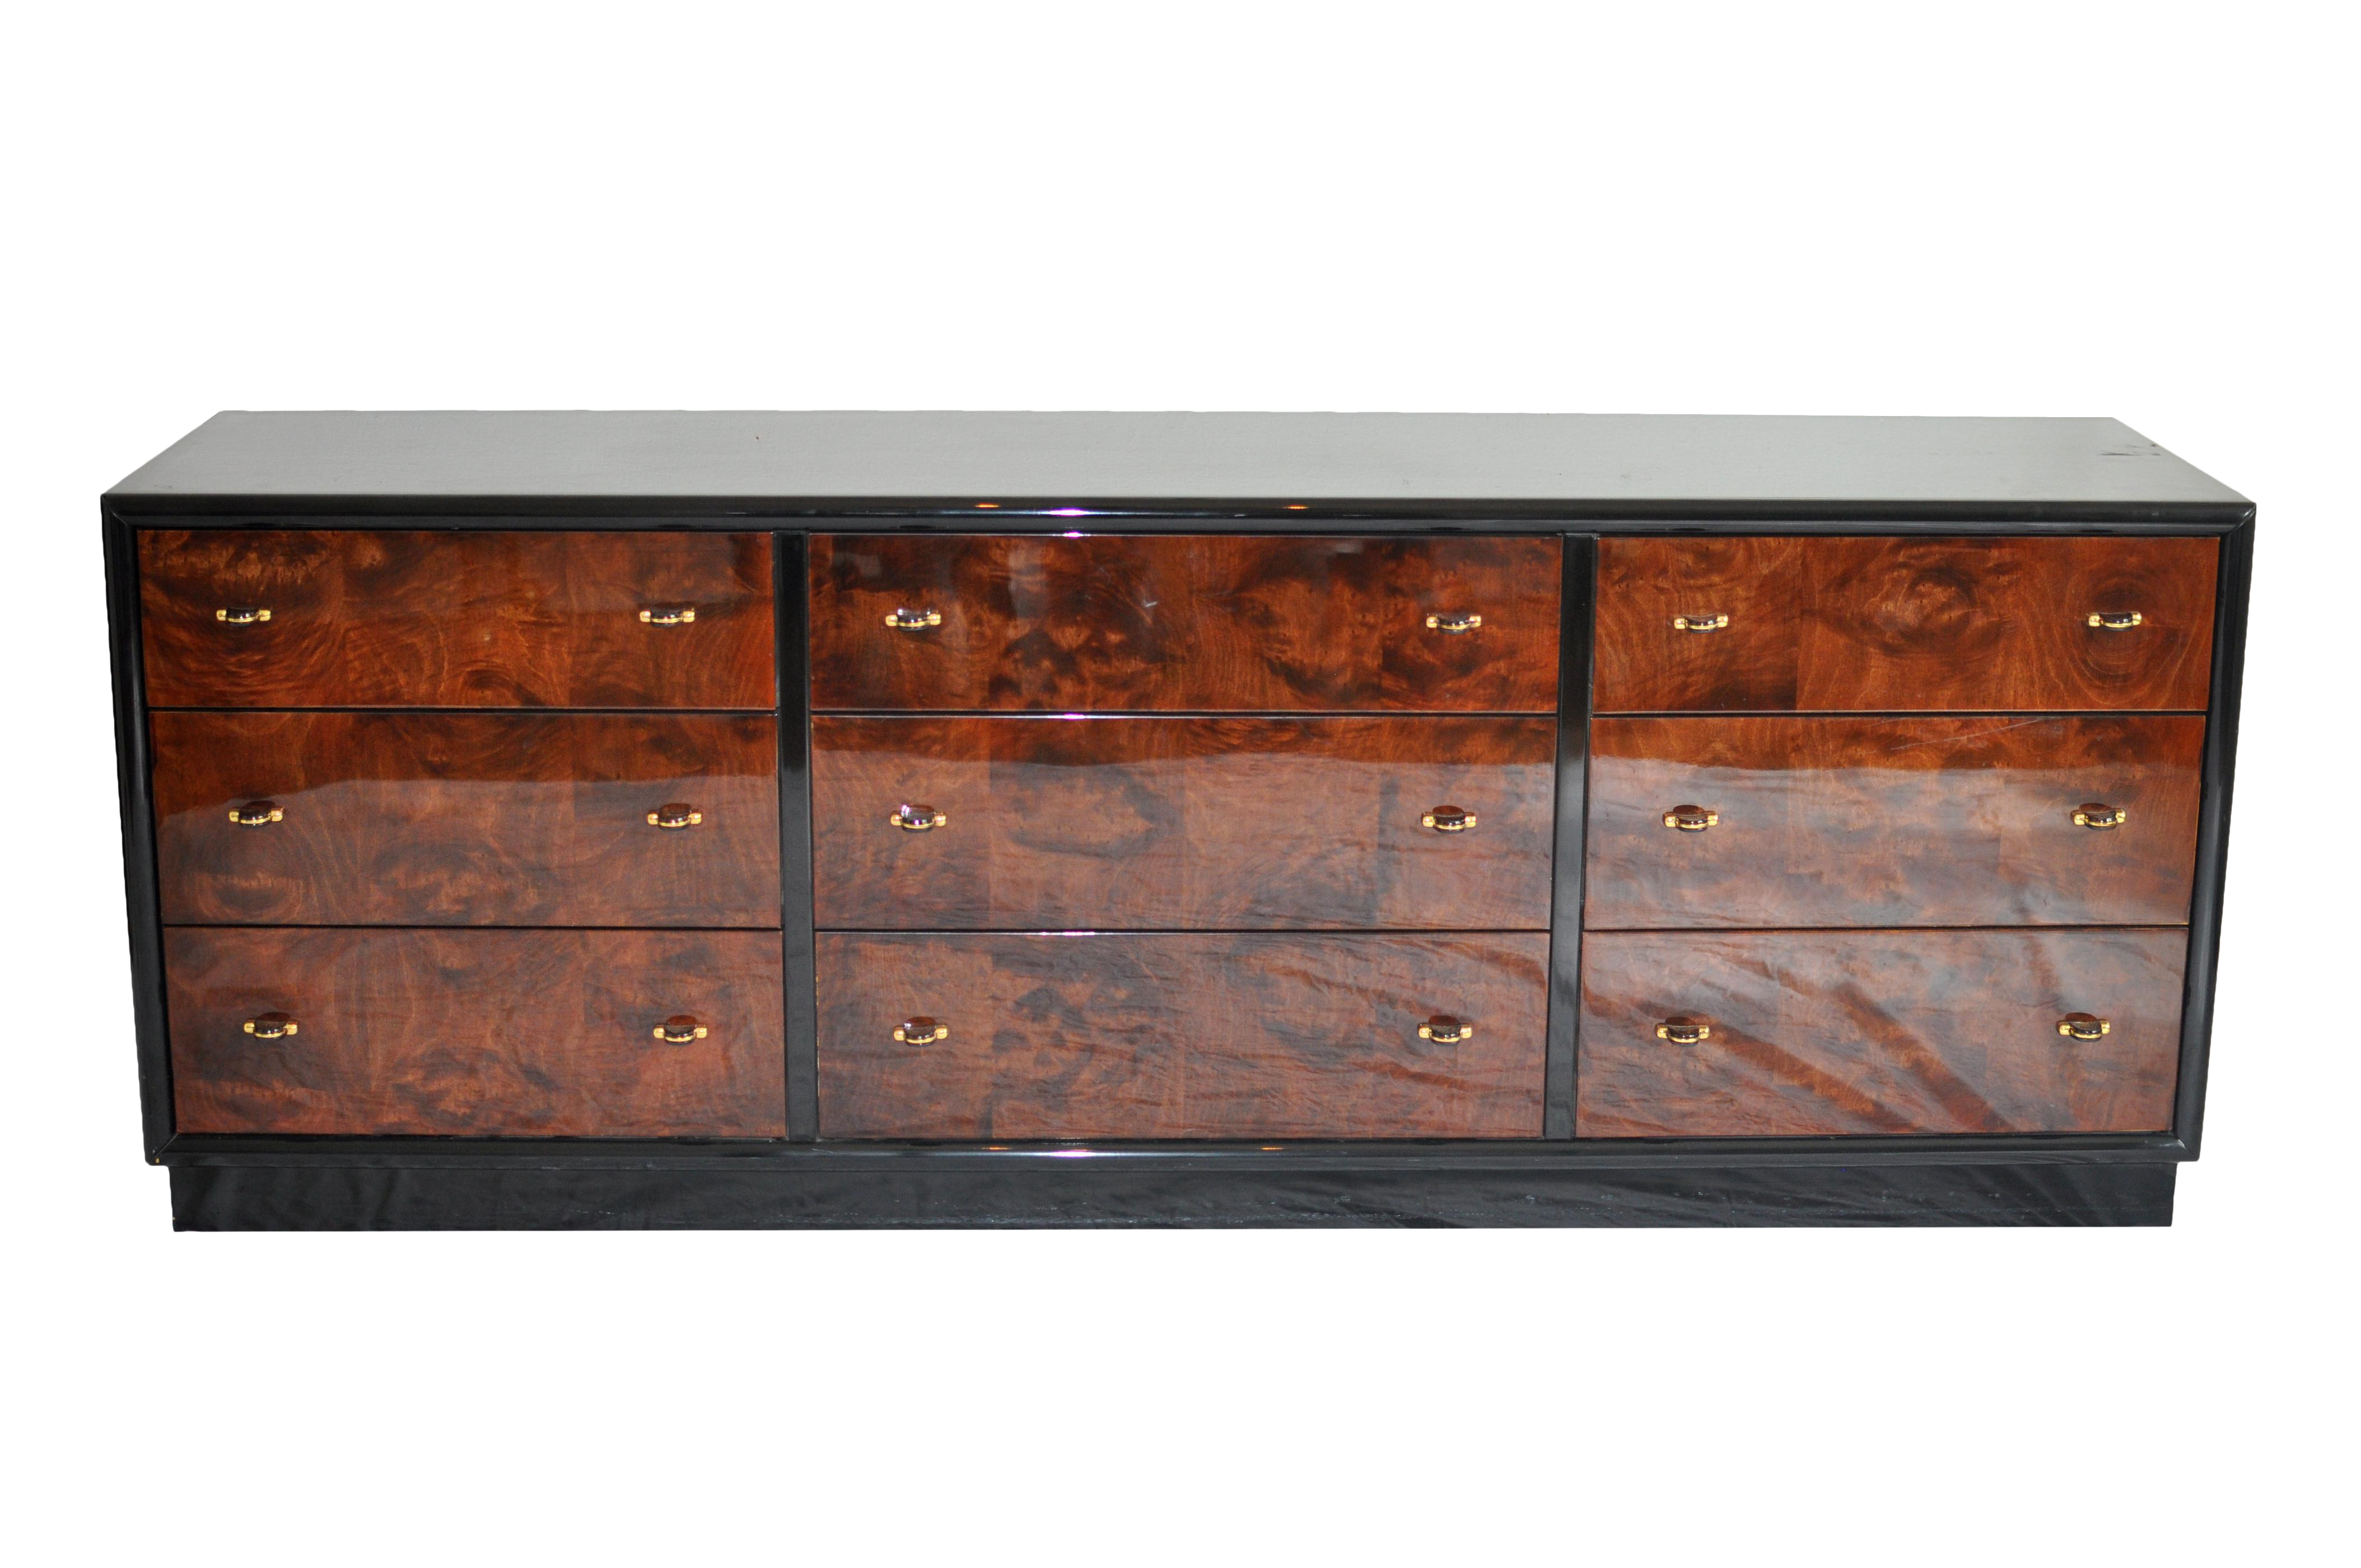 Incroyable Henredon Black Lacquer U0026 Burled Wood 9 Drawer Chest Of Drawers | Chairish